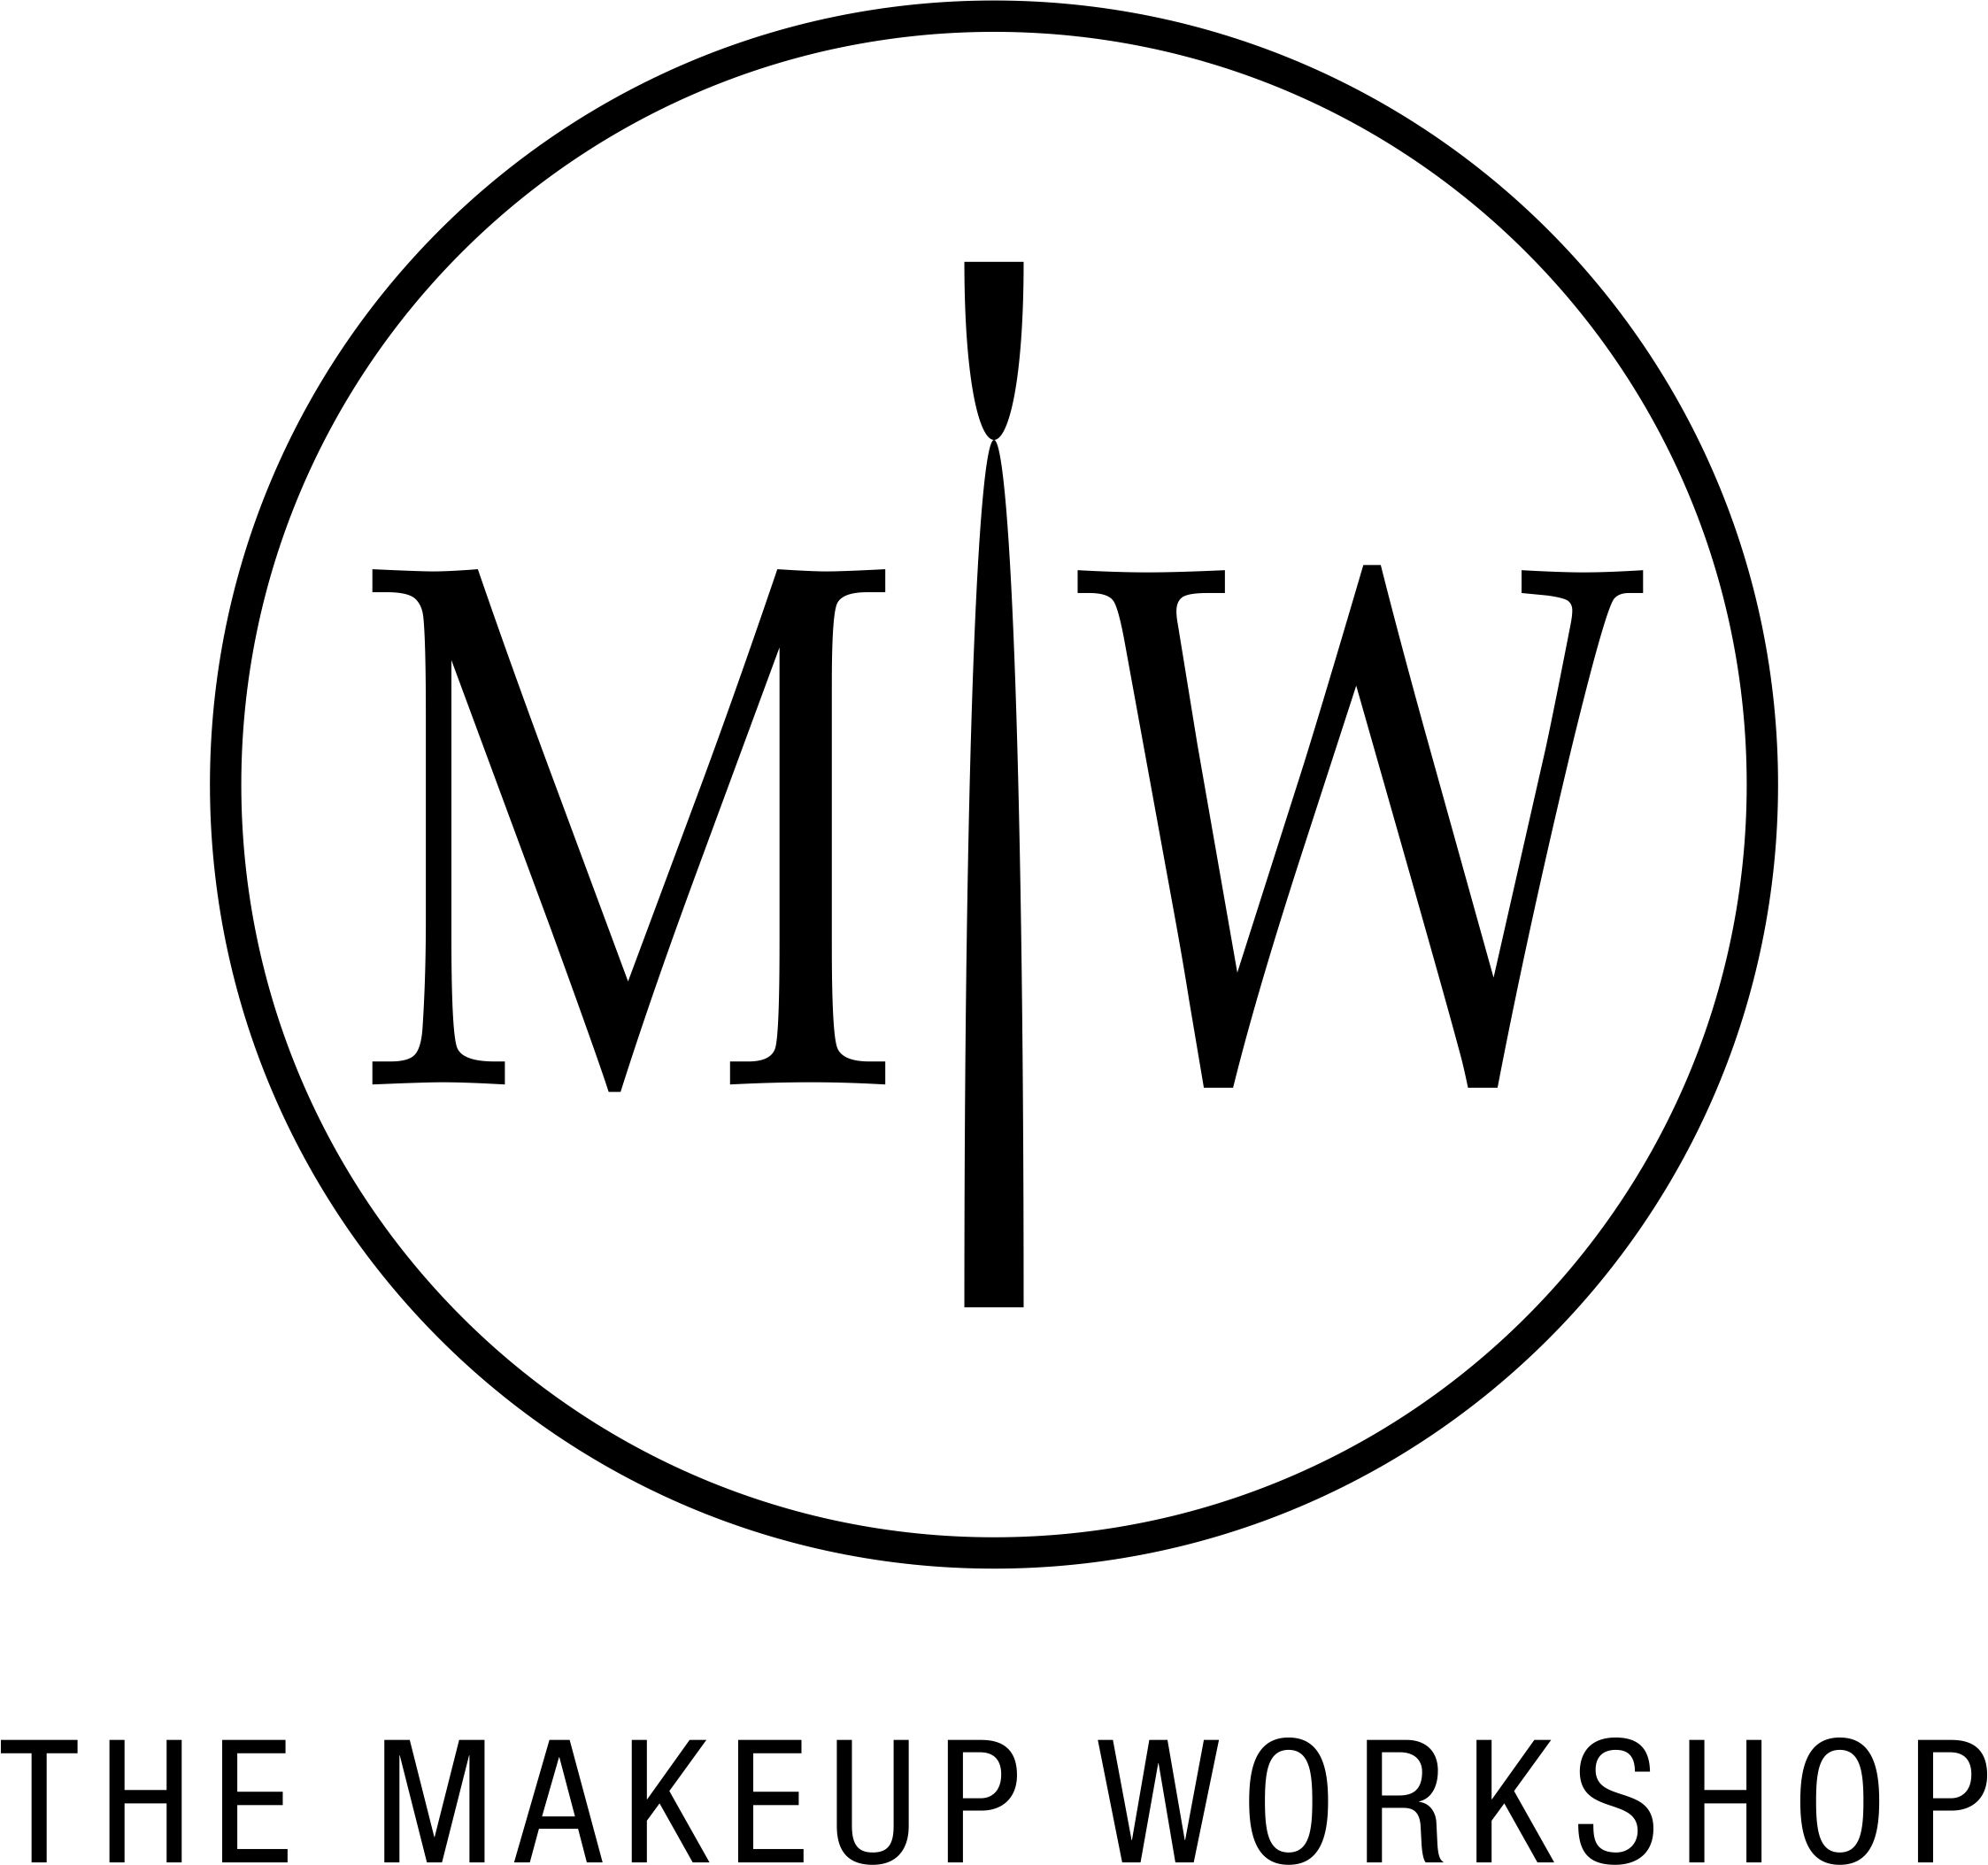 the-makeup-workshop-logo-fa.jpg